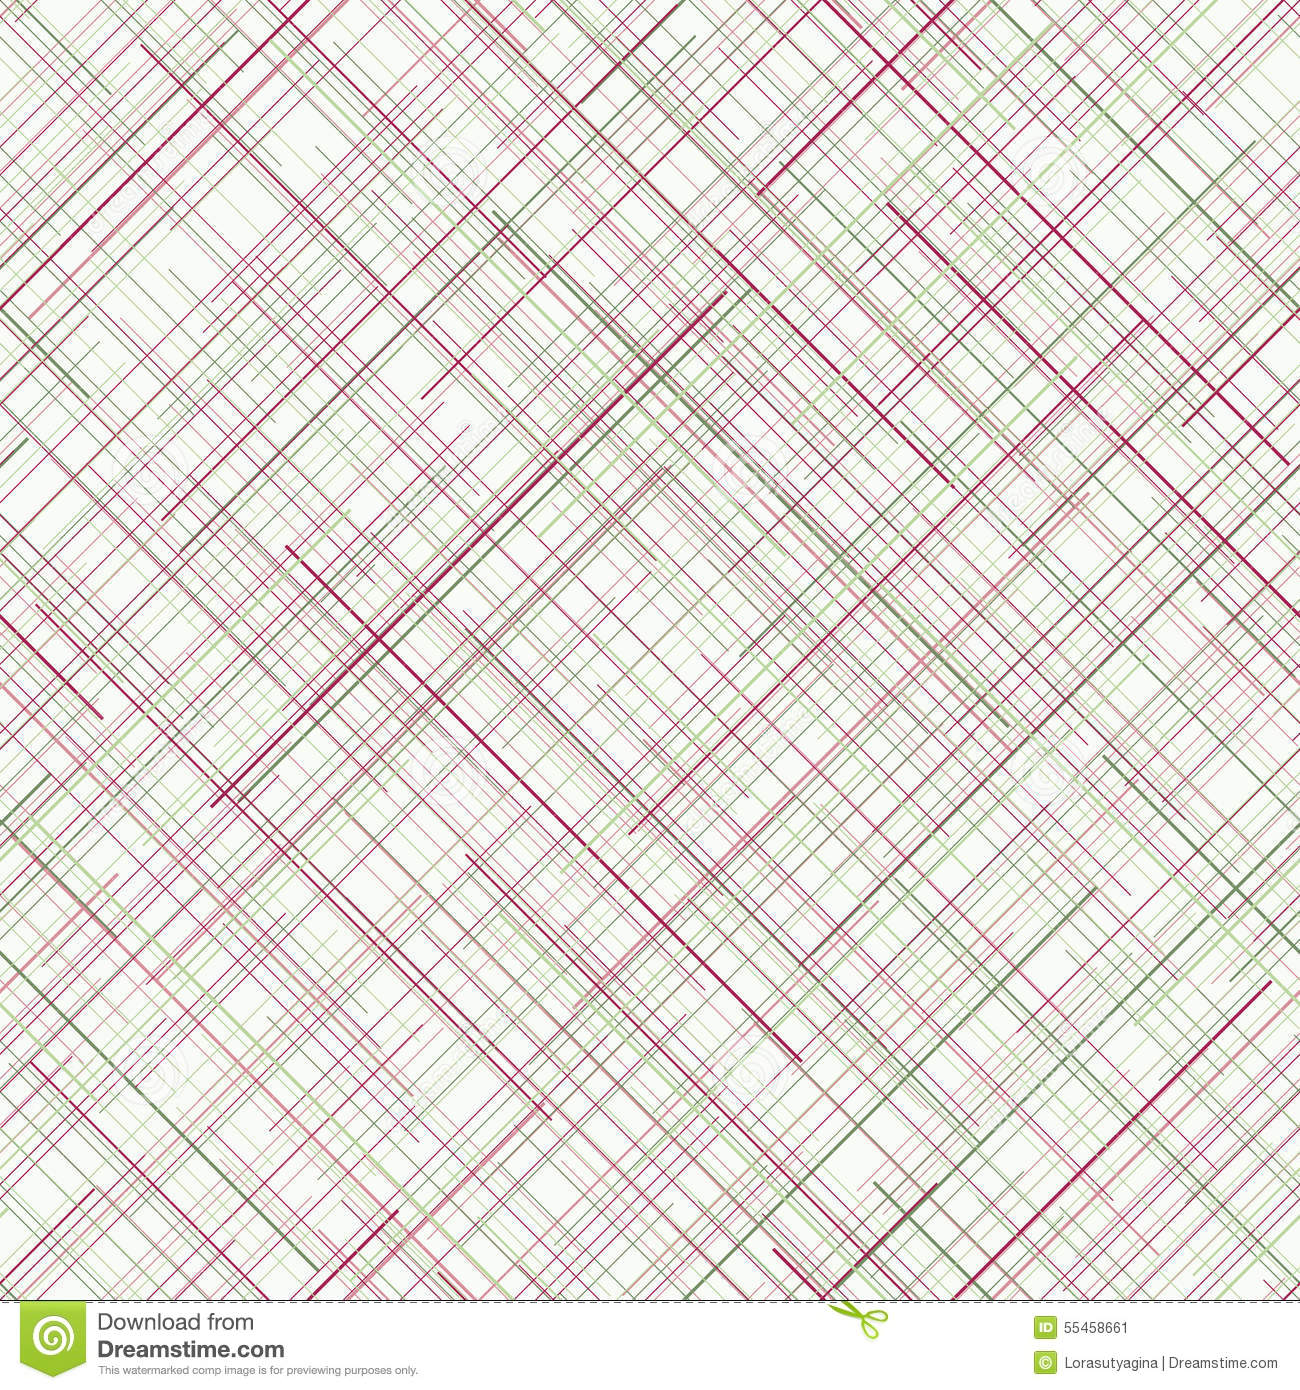 Line Texture Seamless : Abstract background diagonal random lines pale colors